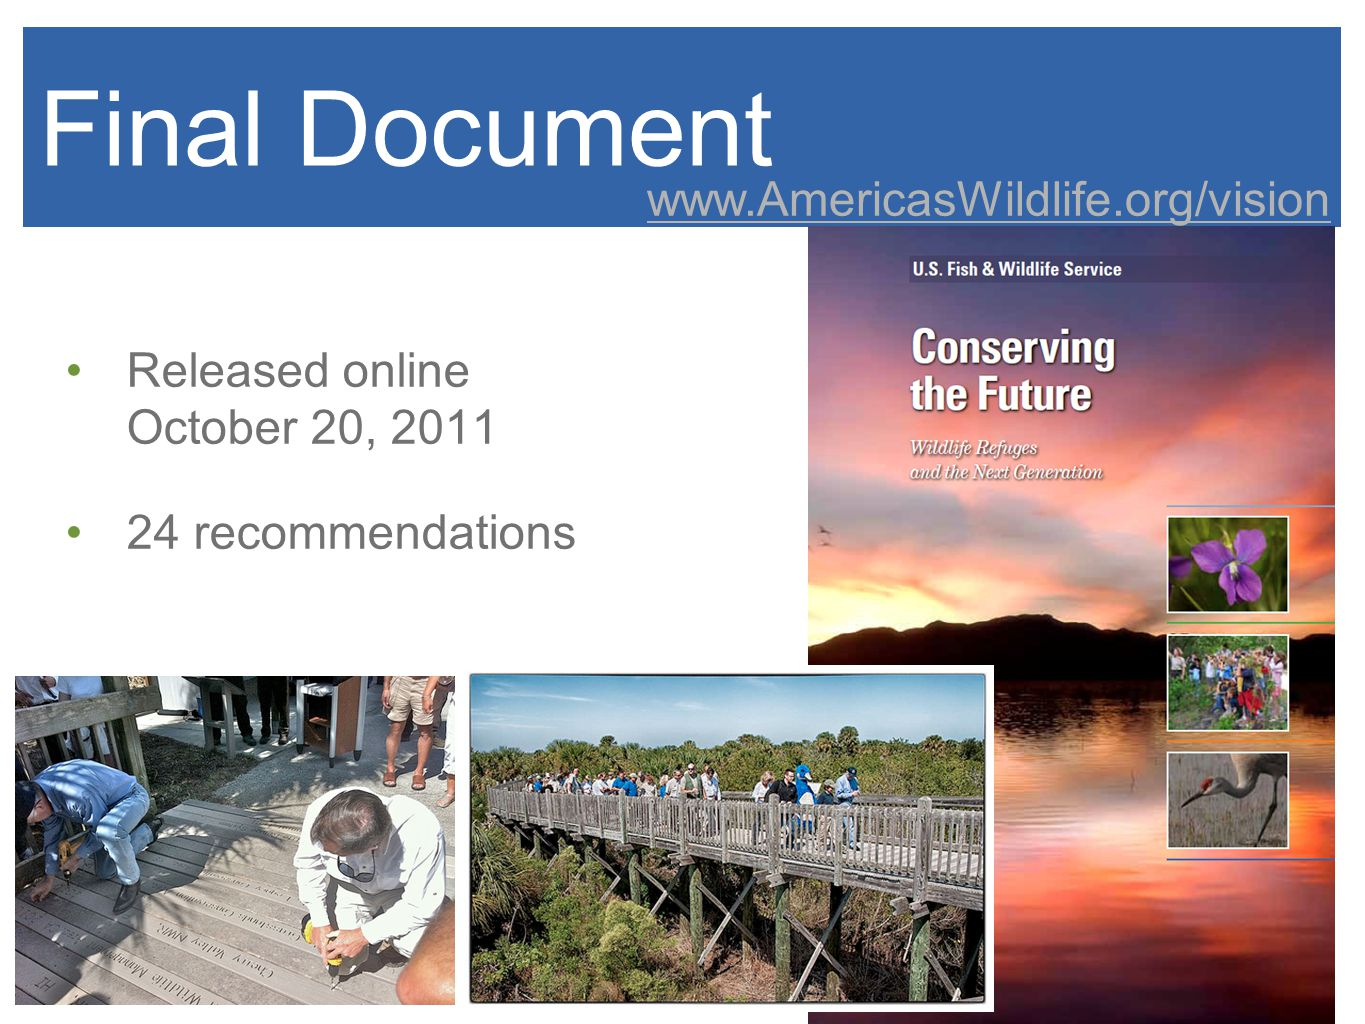 Final Document Released online October 20, 2011 24 recommendations www.AmericasWildlife.org/vision